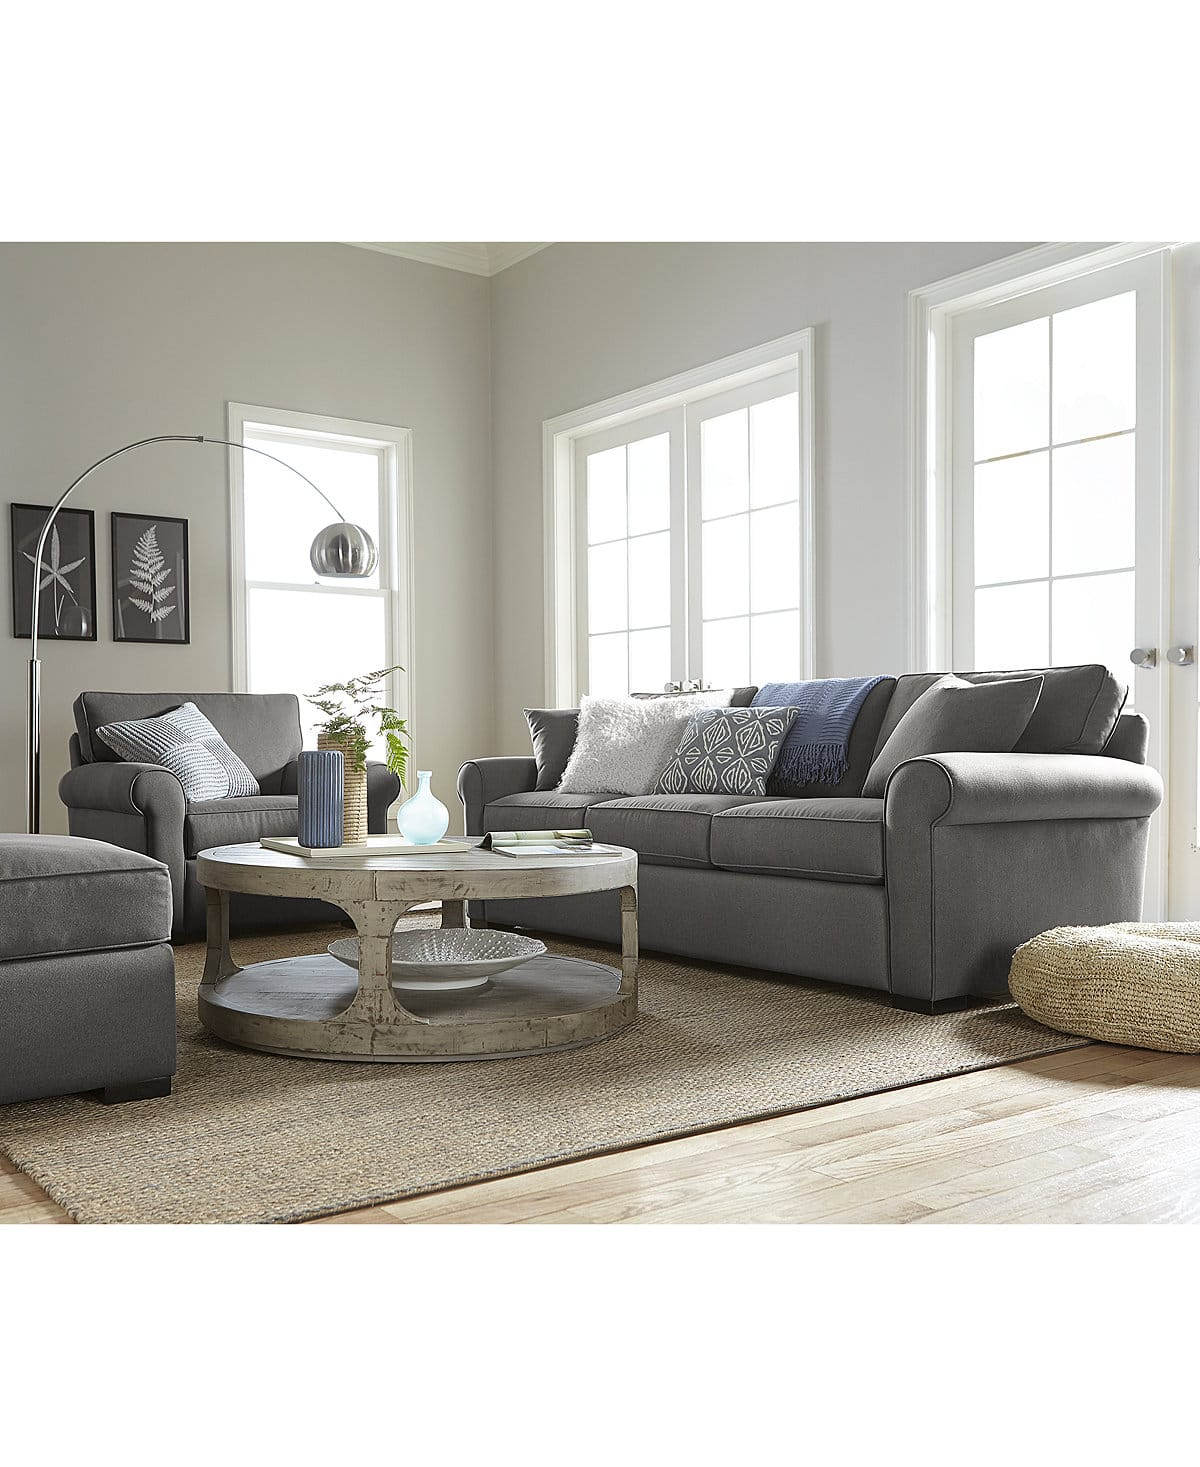 Macy S Kenton Fabric Sofa Now 599